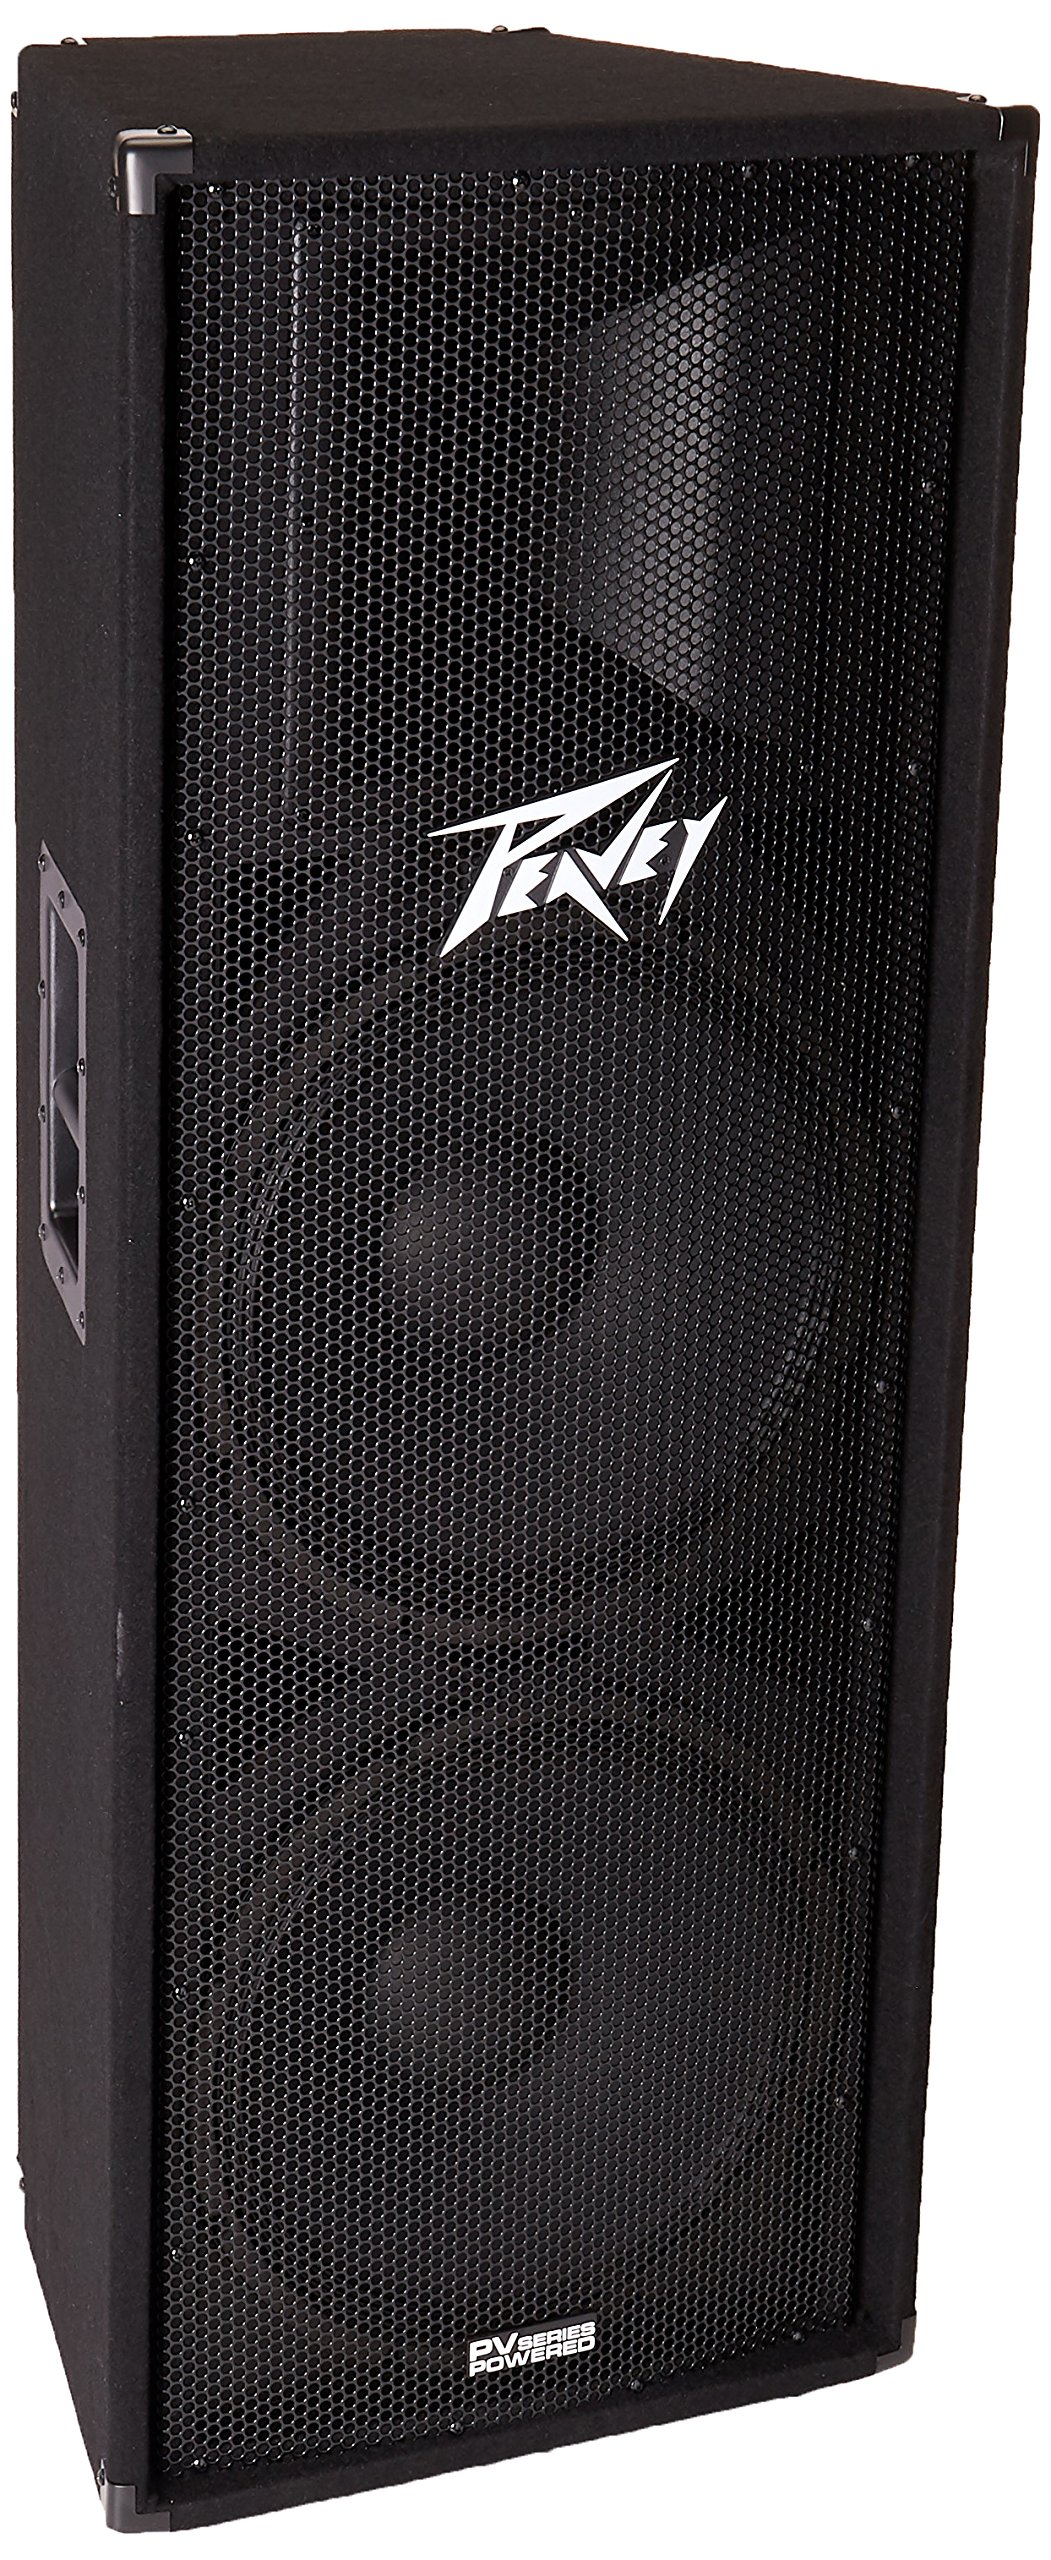 Peavey PV215D 800w Powered Speaker Enclosure w/ 2 15'' Heavy Duty Woofers and HD Driver